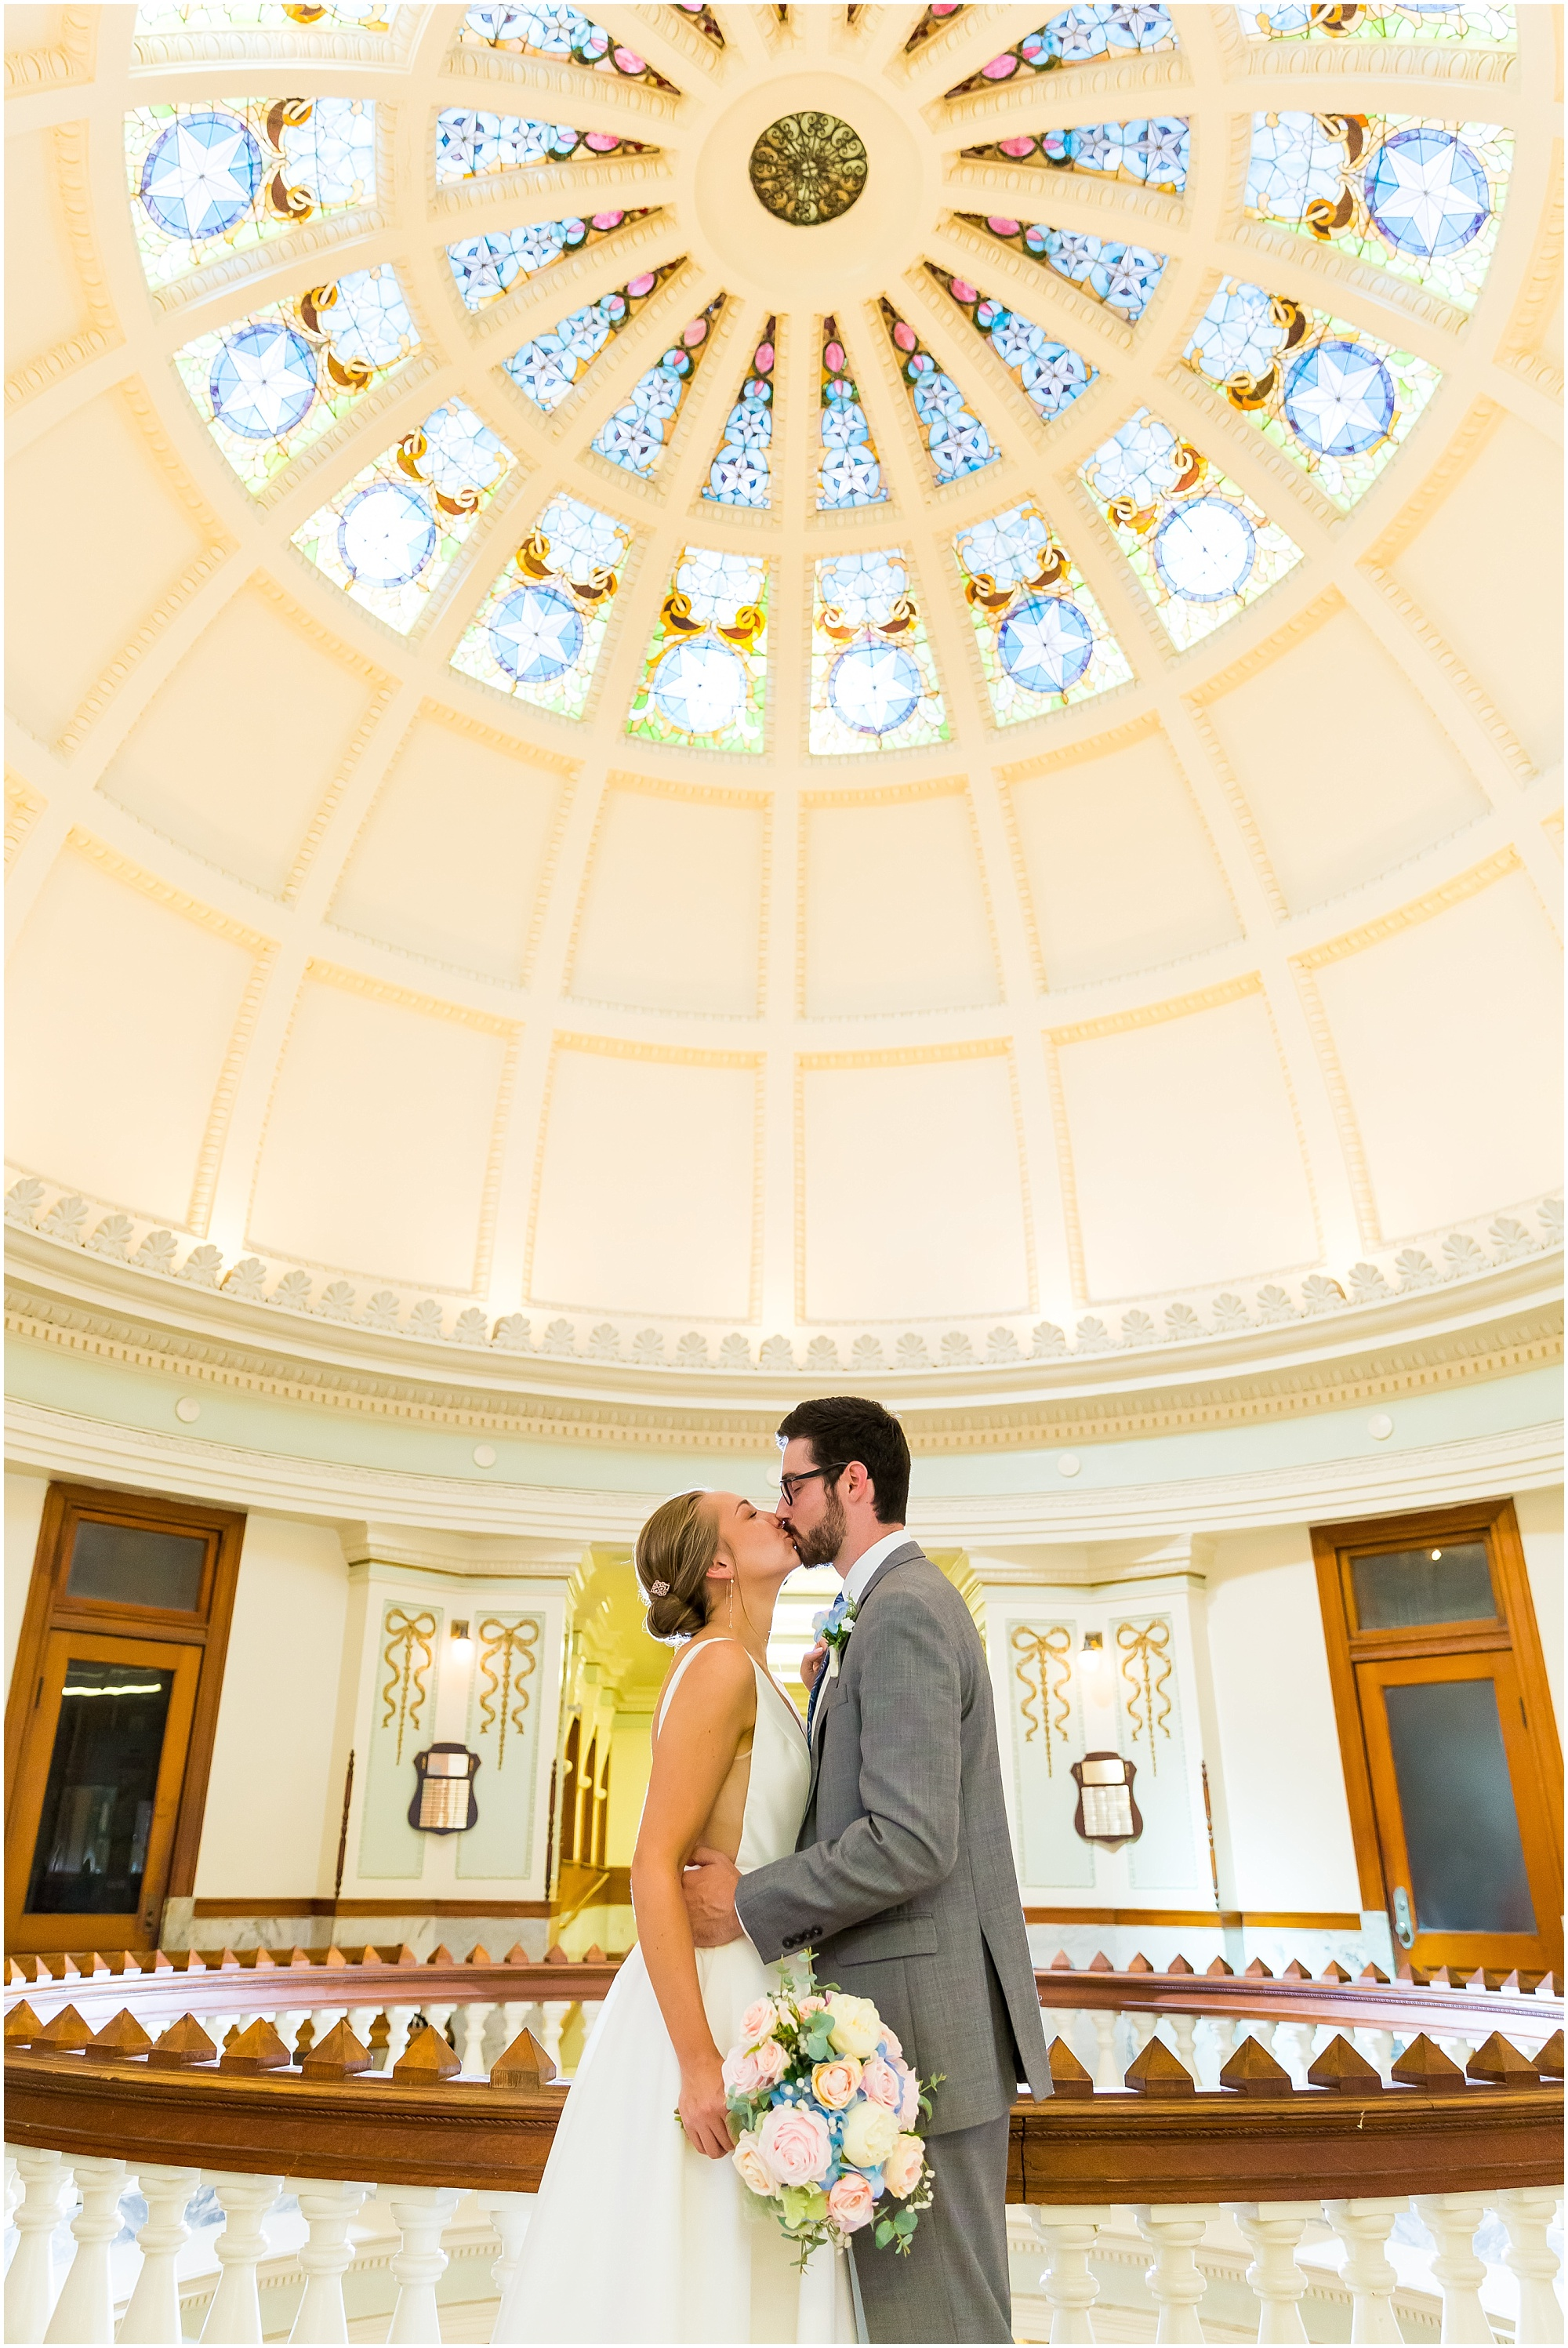 Couple kisses under the stained glass rotunda inside the Waco Courthouse during their courthouse elopement in Waco, Texas | Jason & Melaina Photography